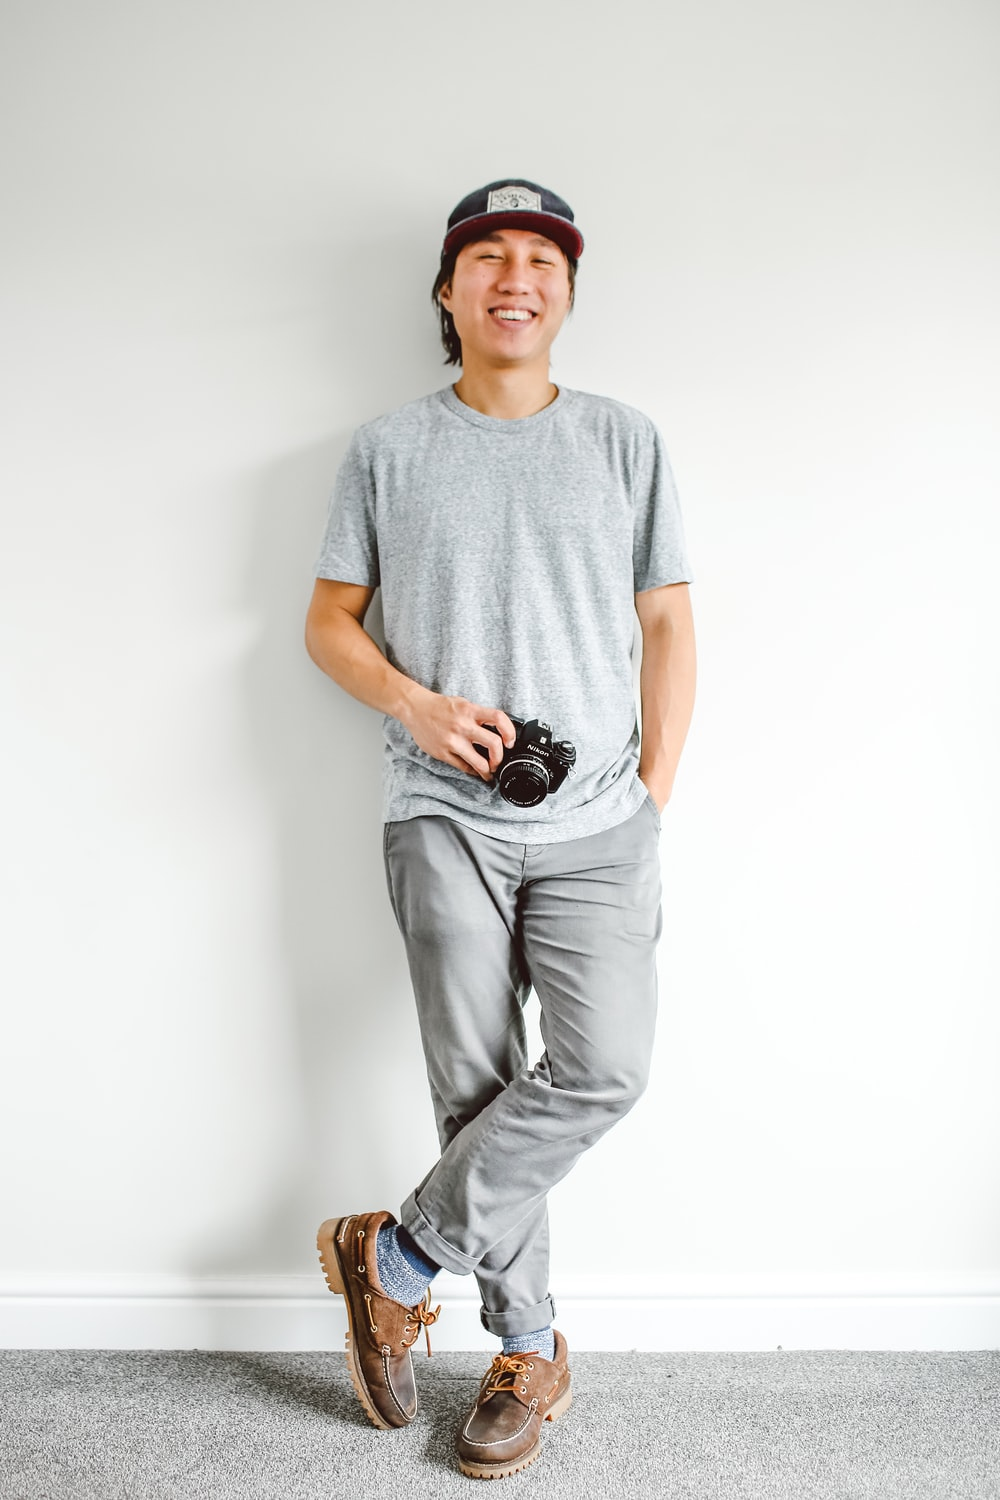 man standing and leaning by wall while holding camera